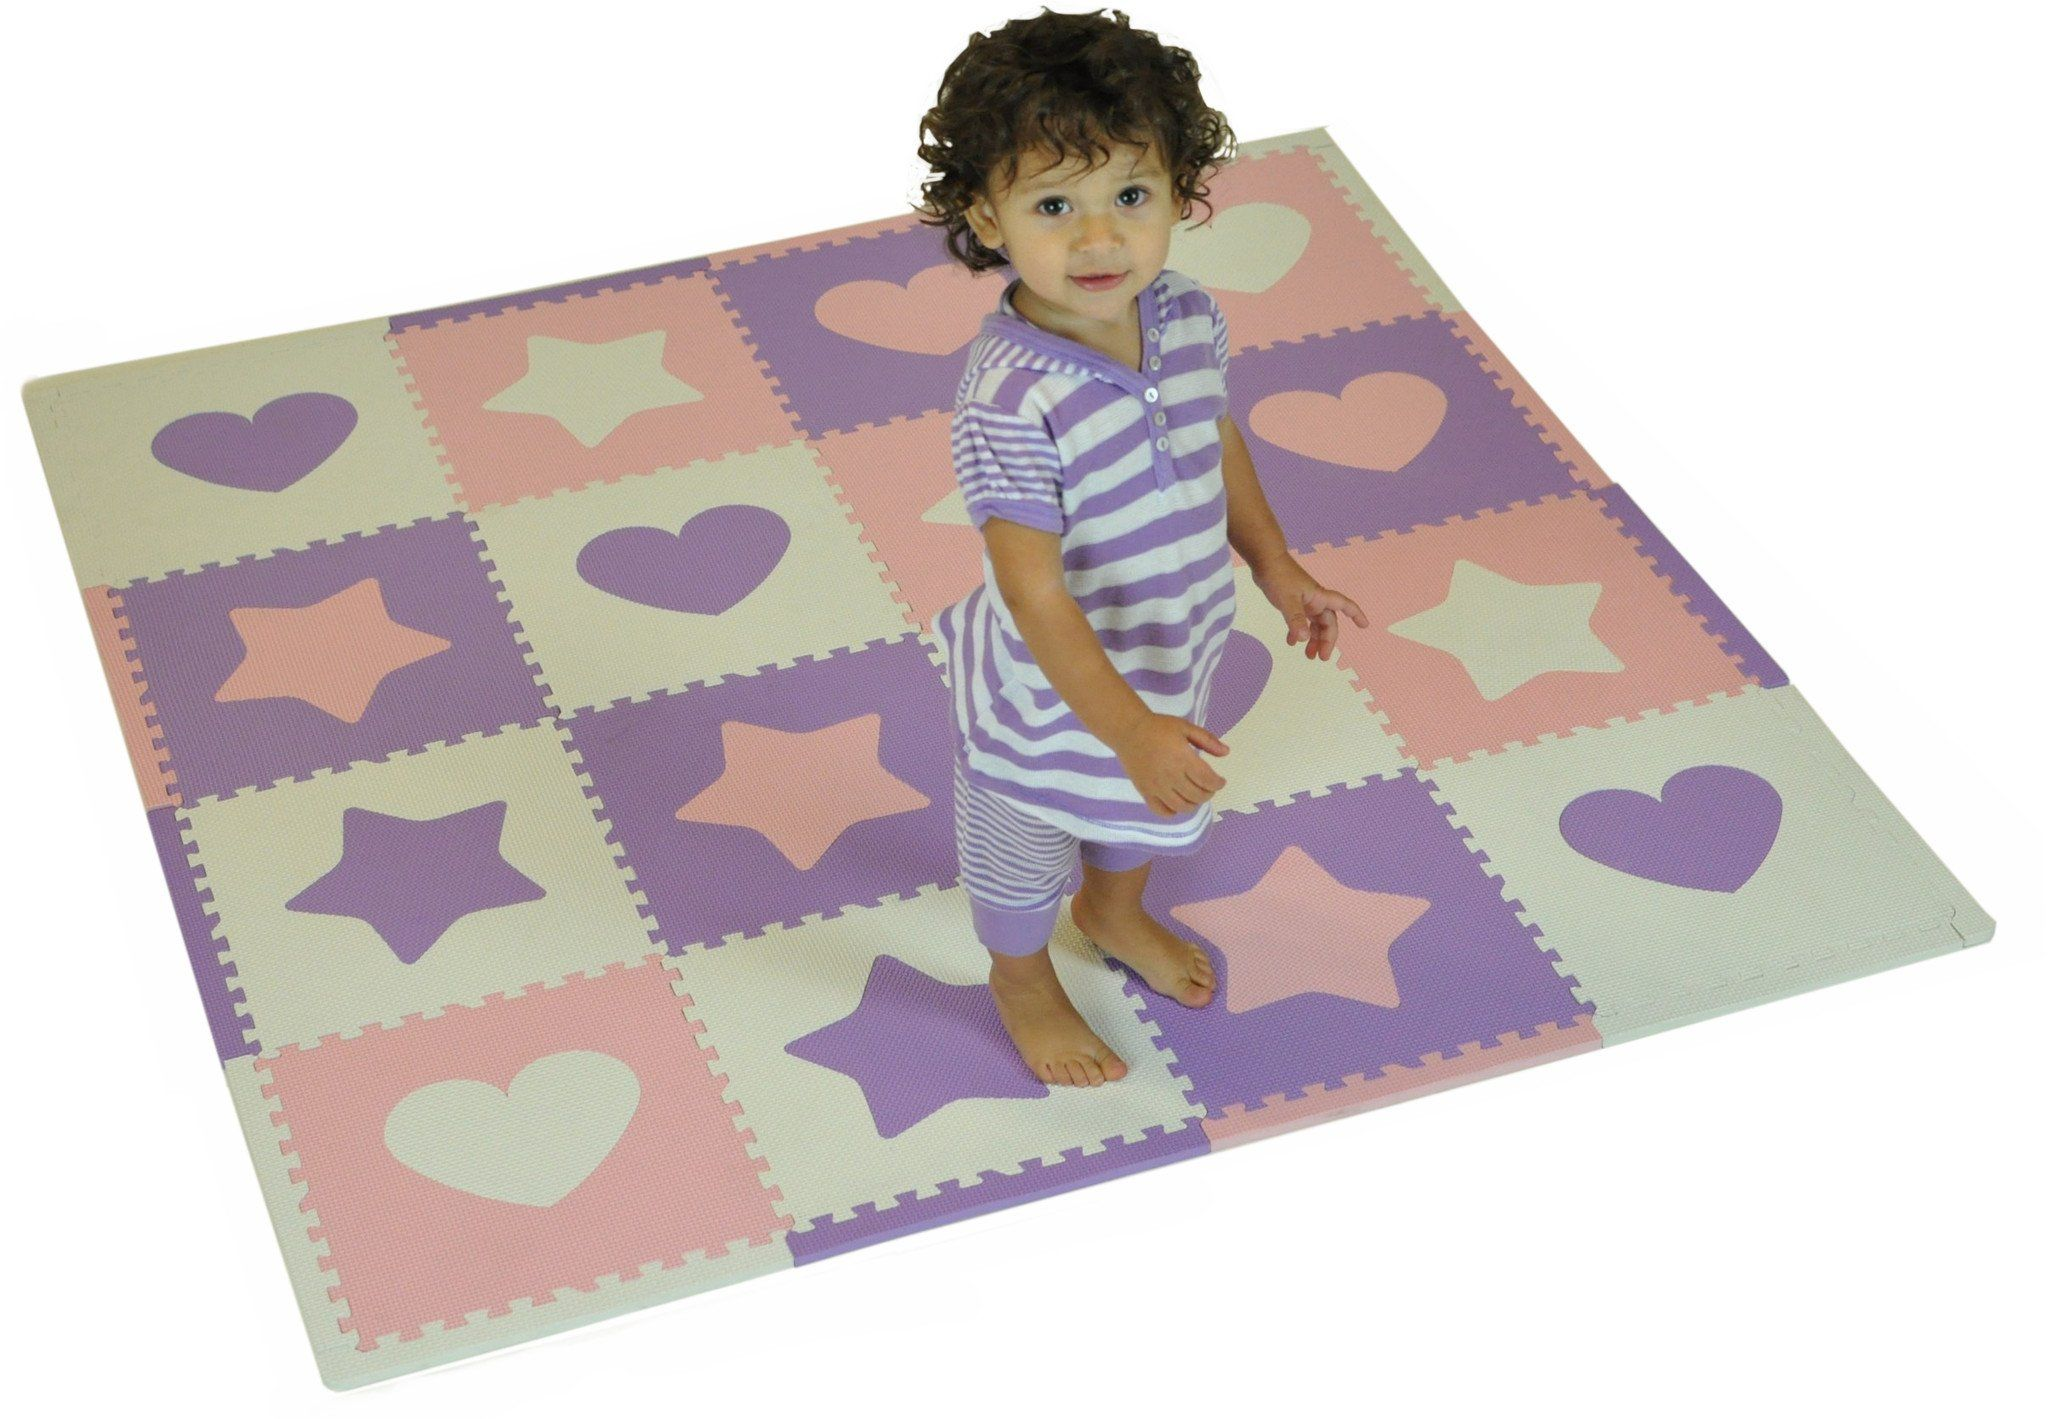 16 Piece Foam Playmat Set, Hearts & Stars Playmats Tadpoles Bedding